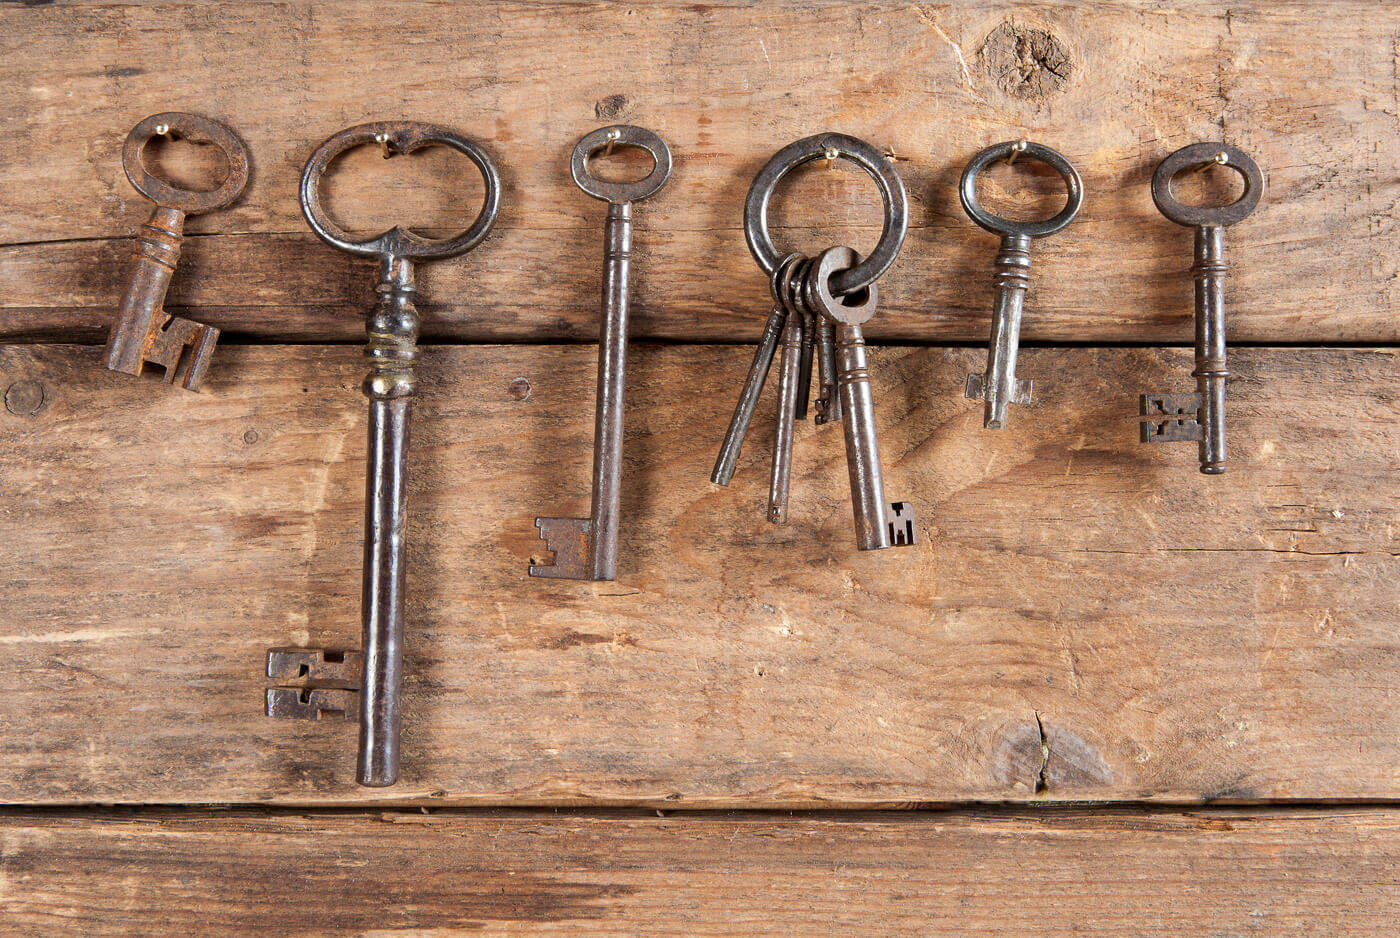 bigstock-Rusty-old-keys-hanging-against-68247856 (1)